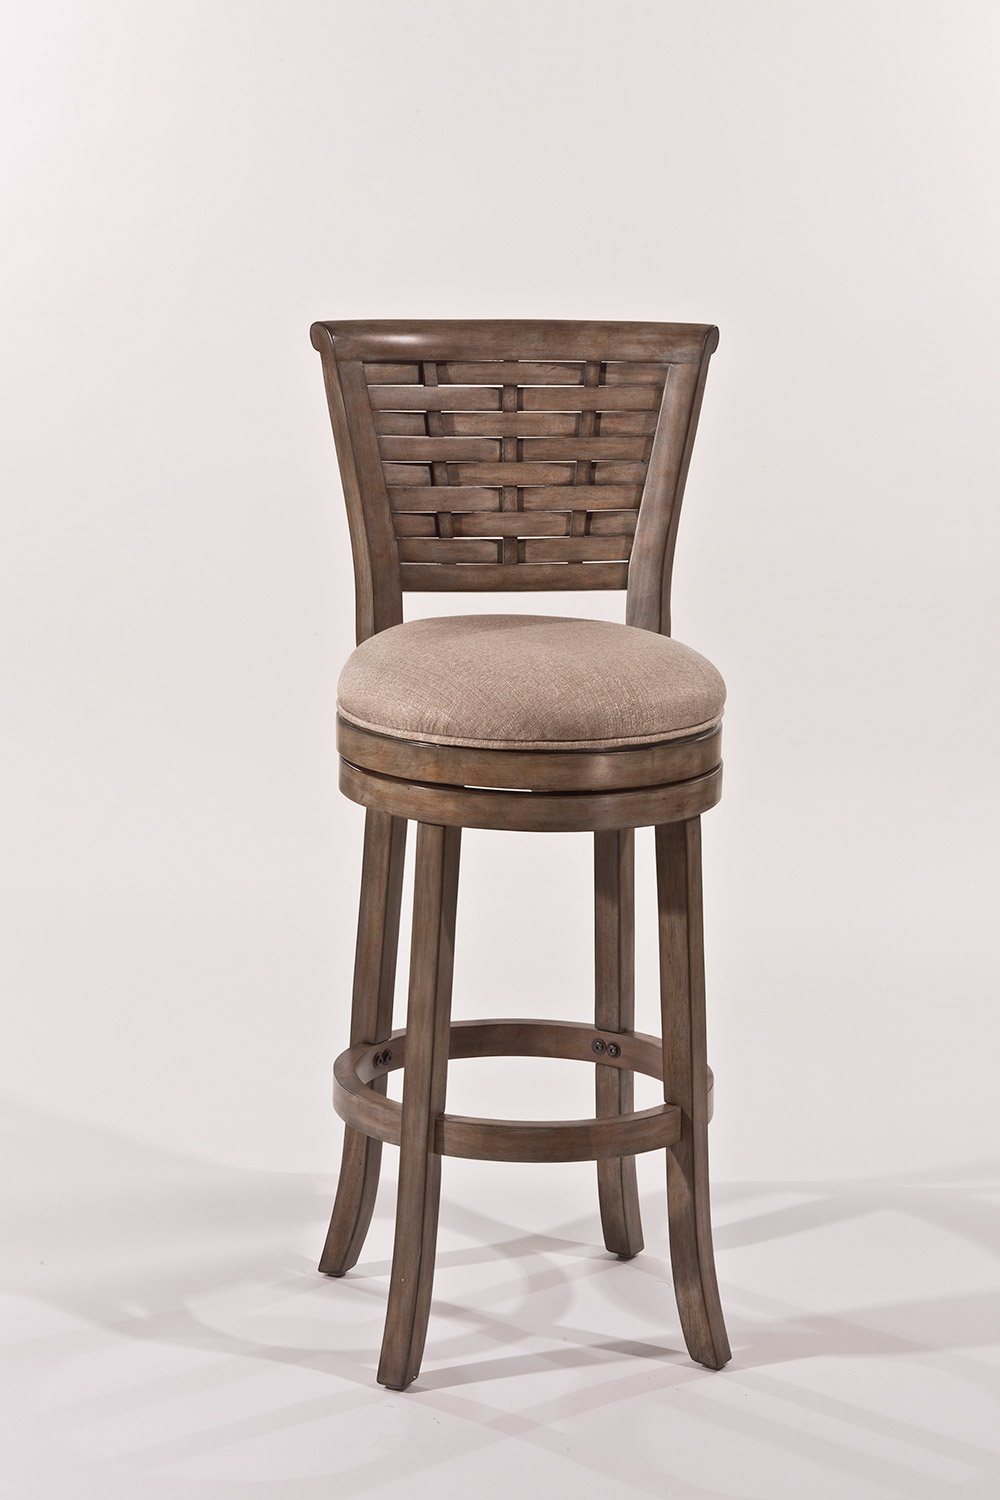 Hillsdale Thredson Swivel Bar Stool - Light Antique Graywash - Putty Fabric